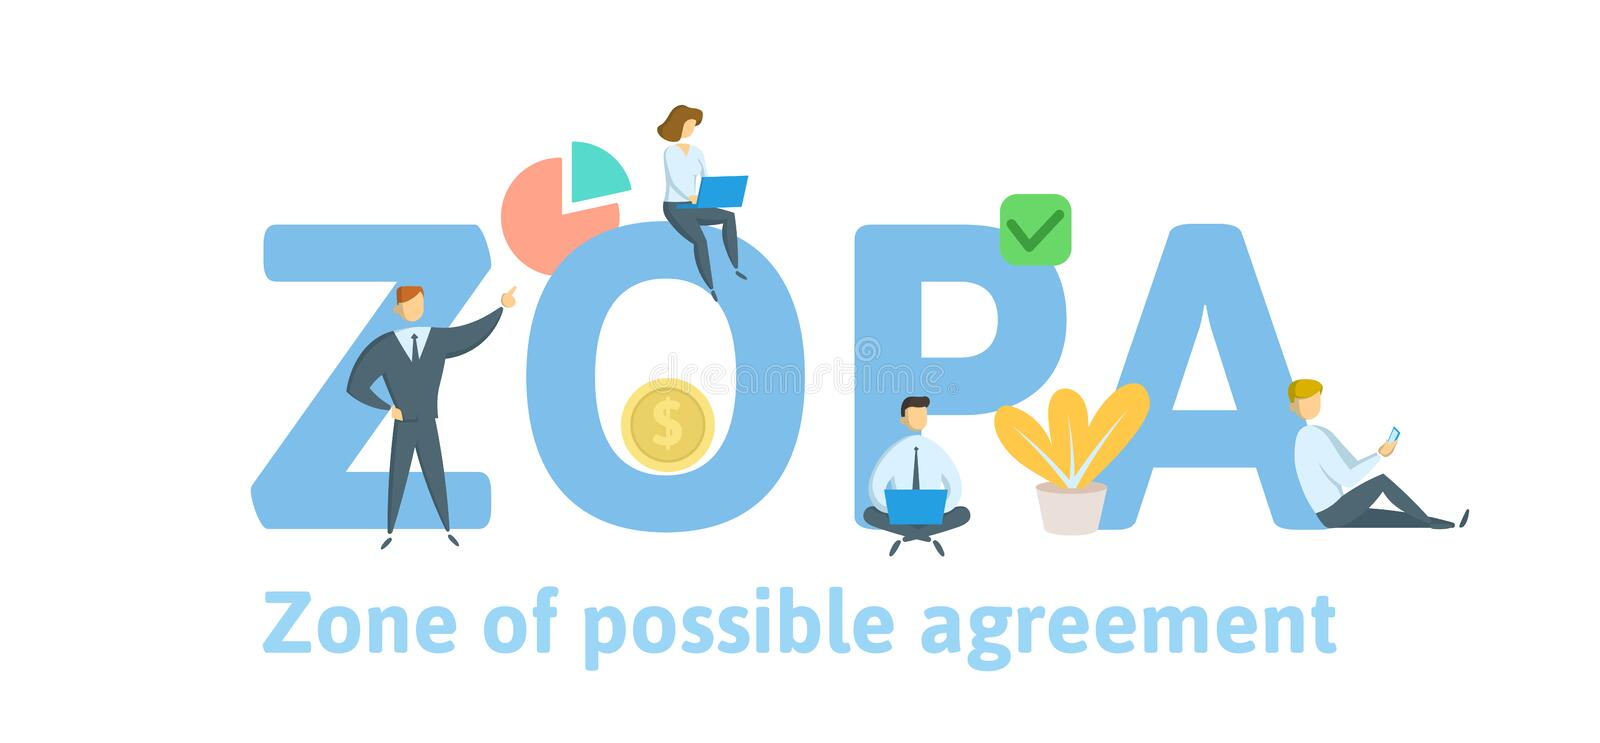 ZOPA, Zone Of Possible Agreement. Concept with keywords, letters and icons. Flat vector illustration. Isolated on white. ZOPA, Zone Of Possible Agreement stock illustration